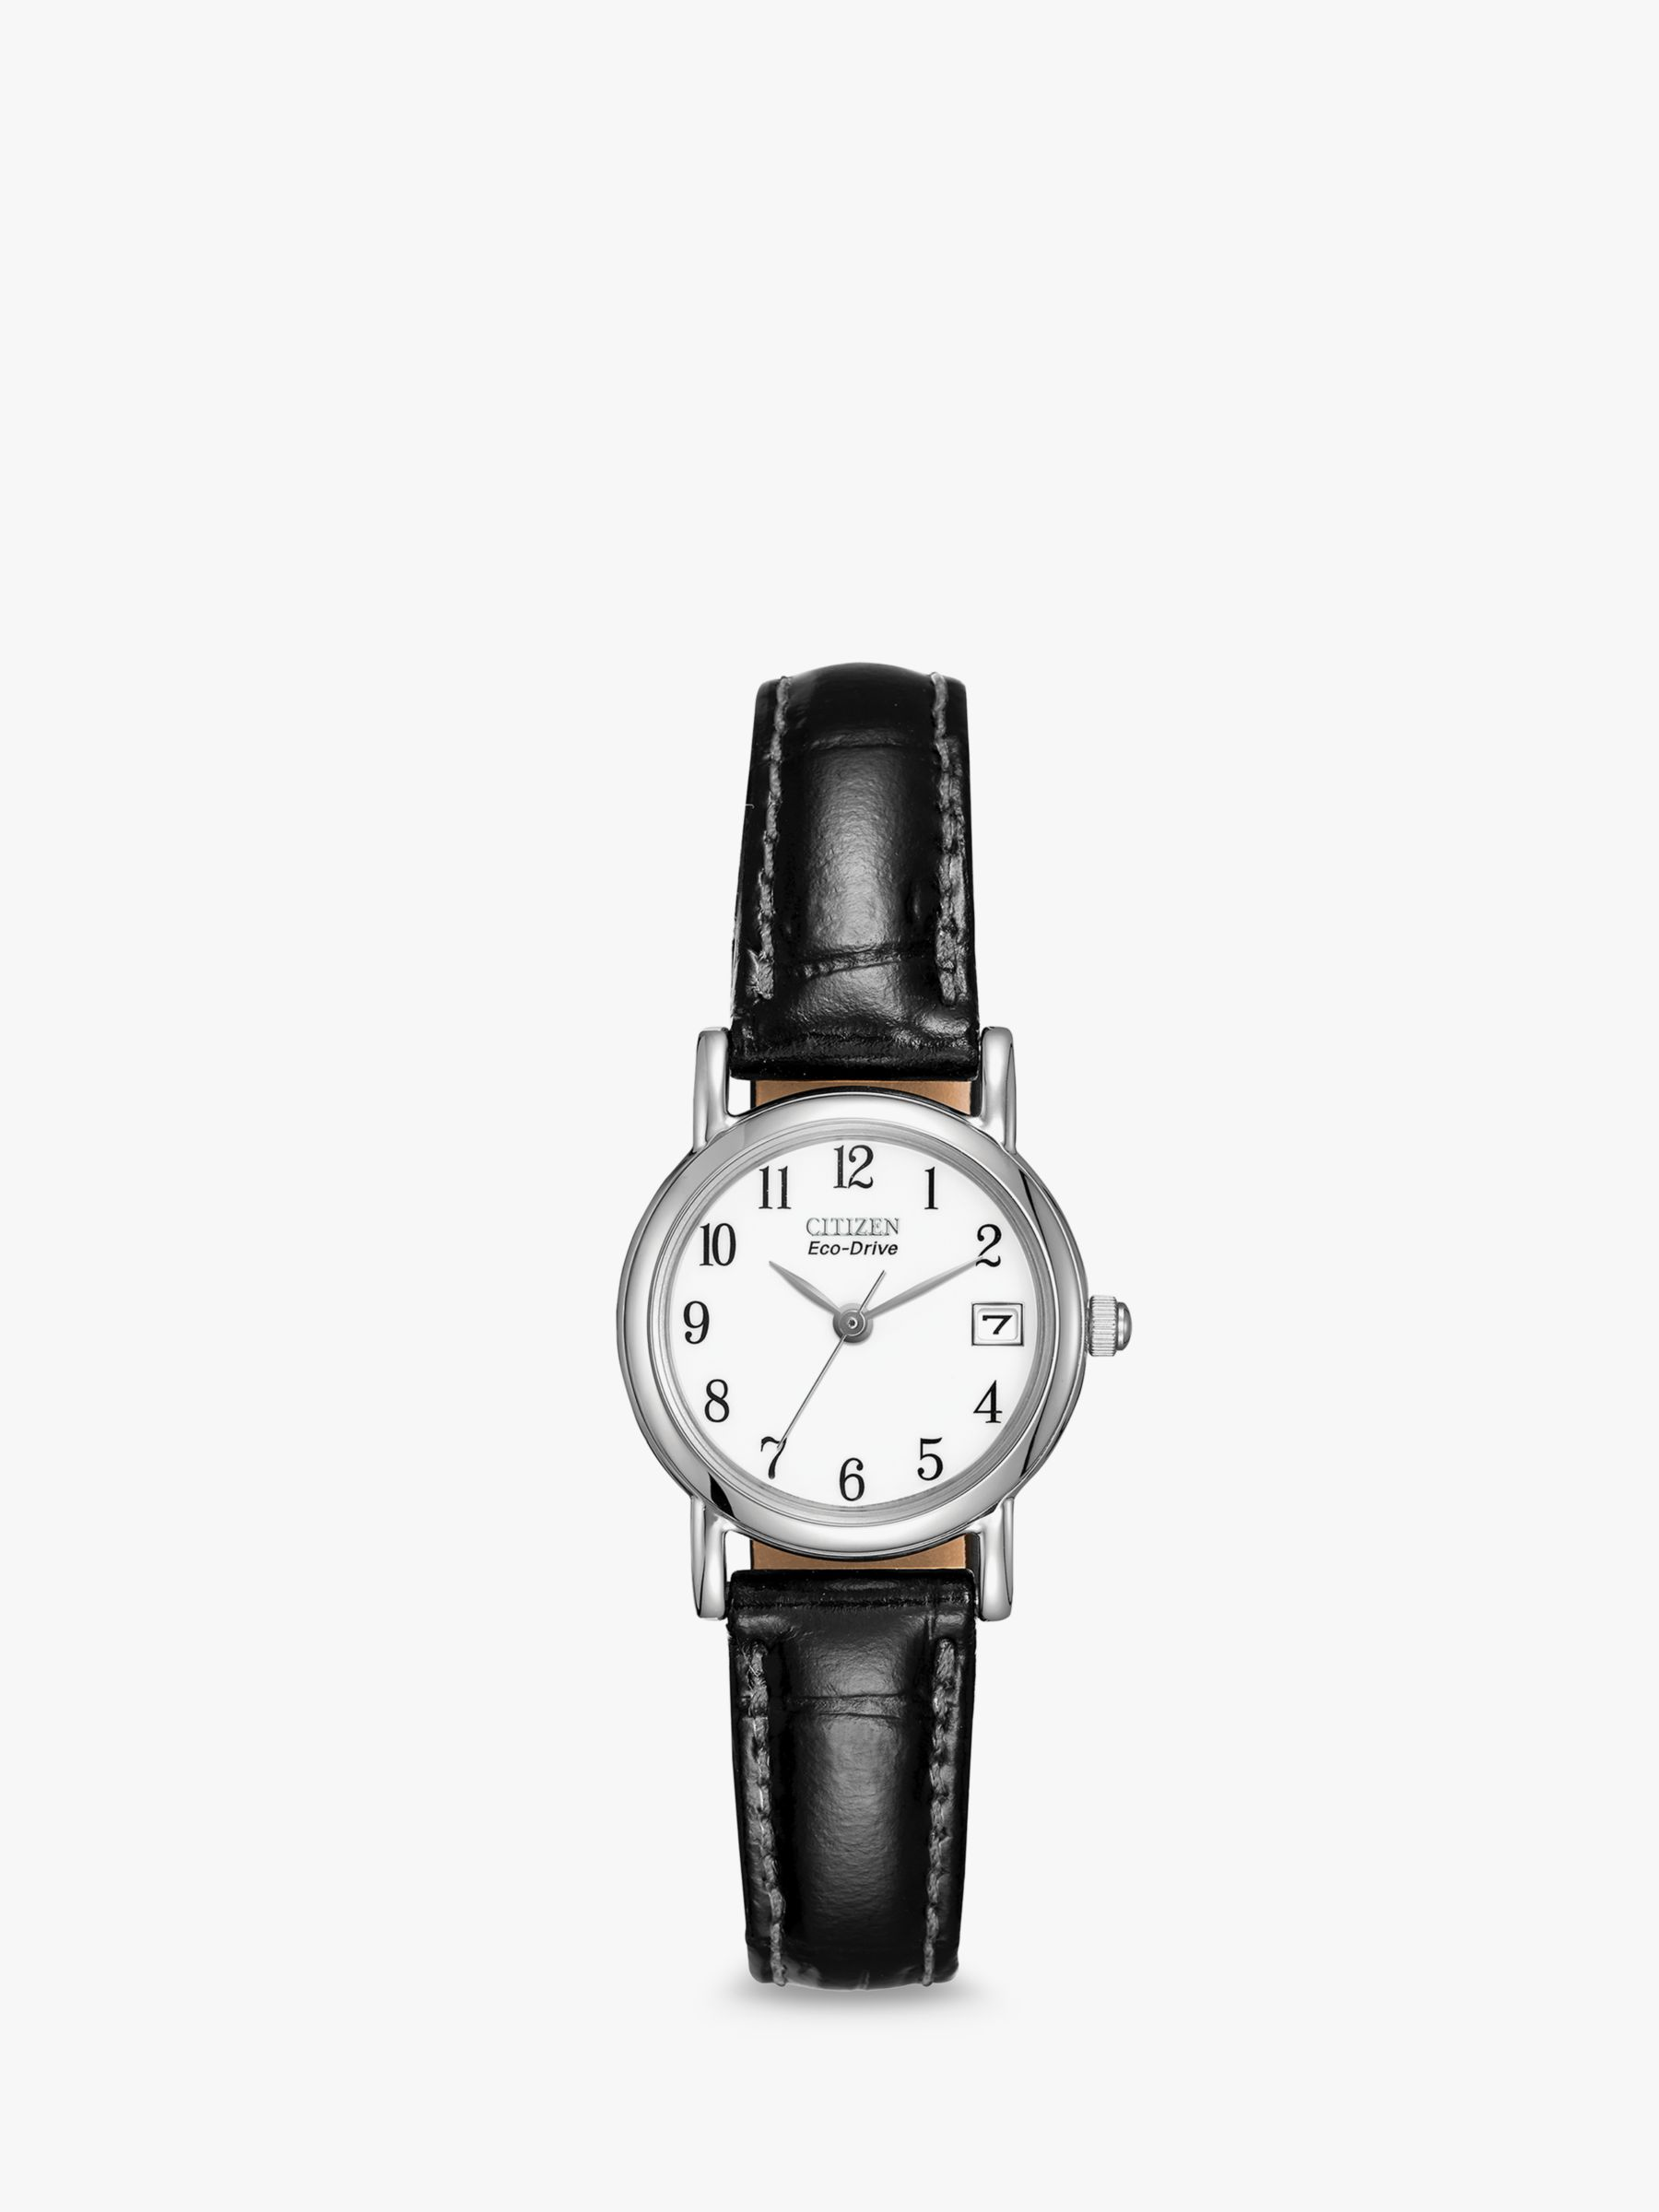 Citizen Citizen EW1270-06A Women's Date Leather Strap Watch, Black/White